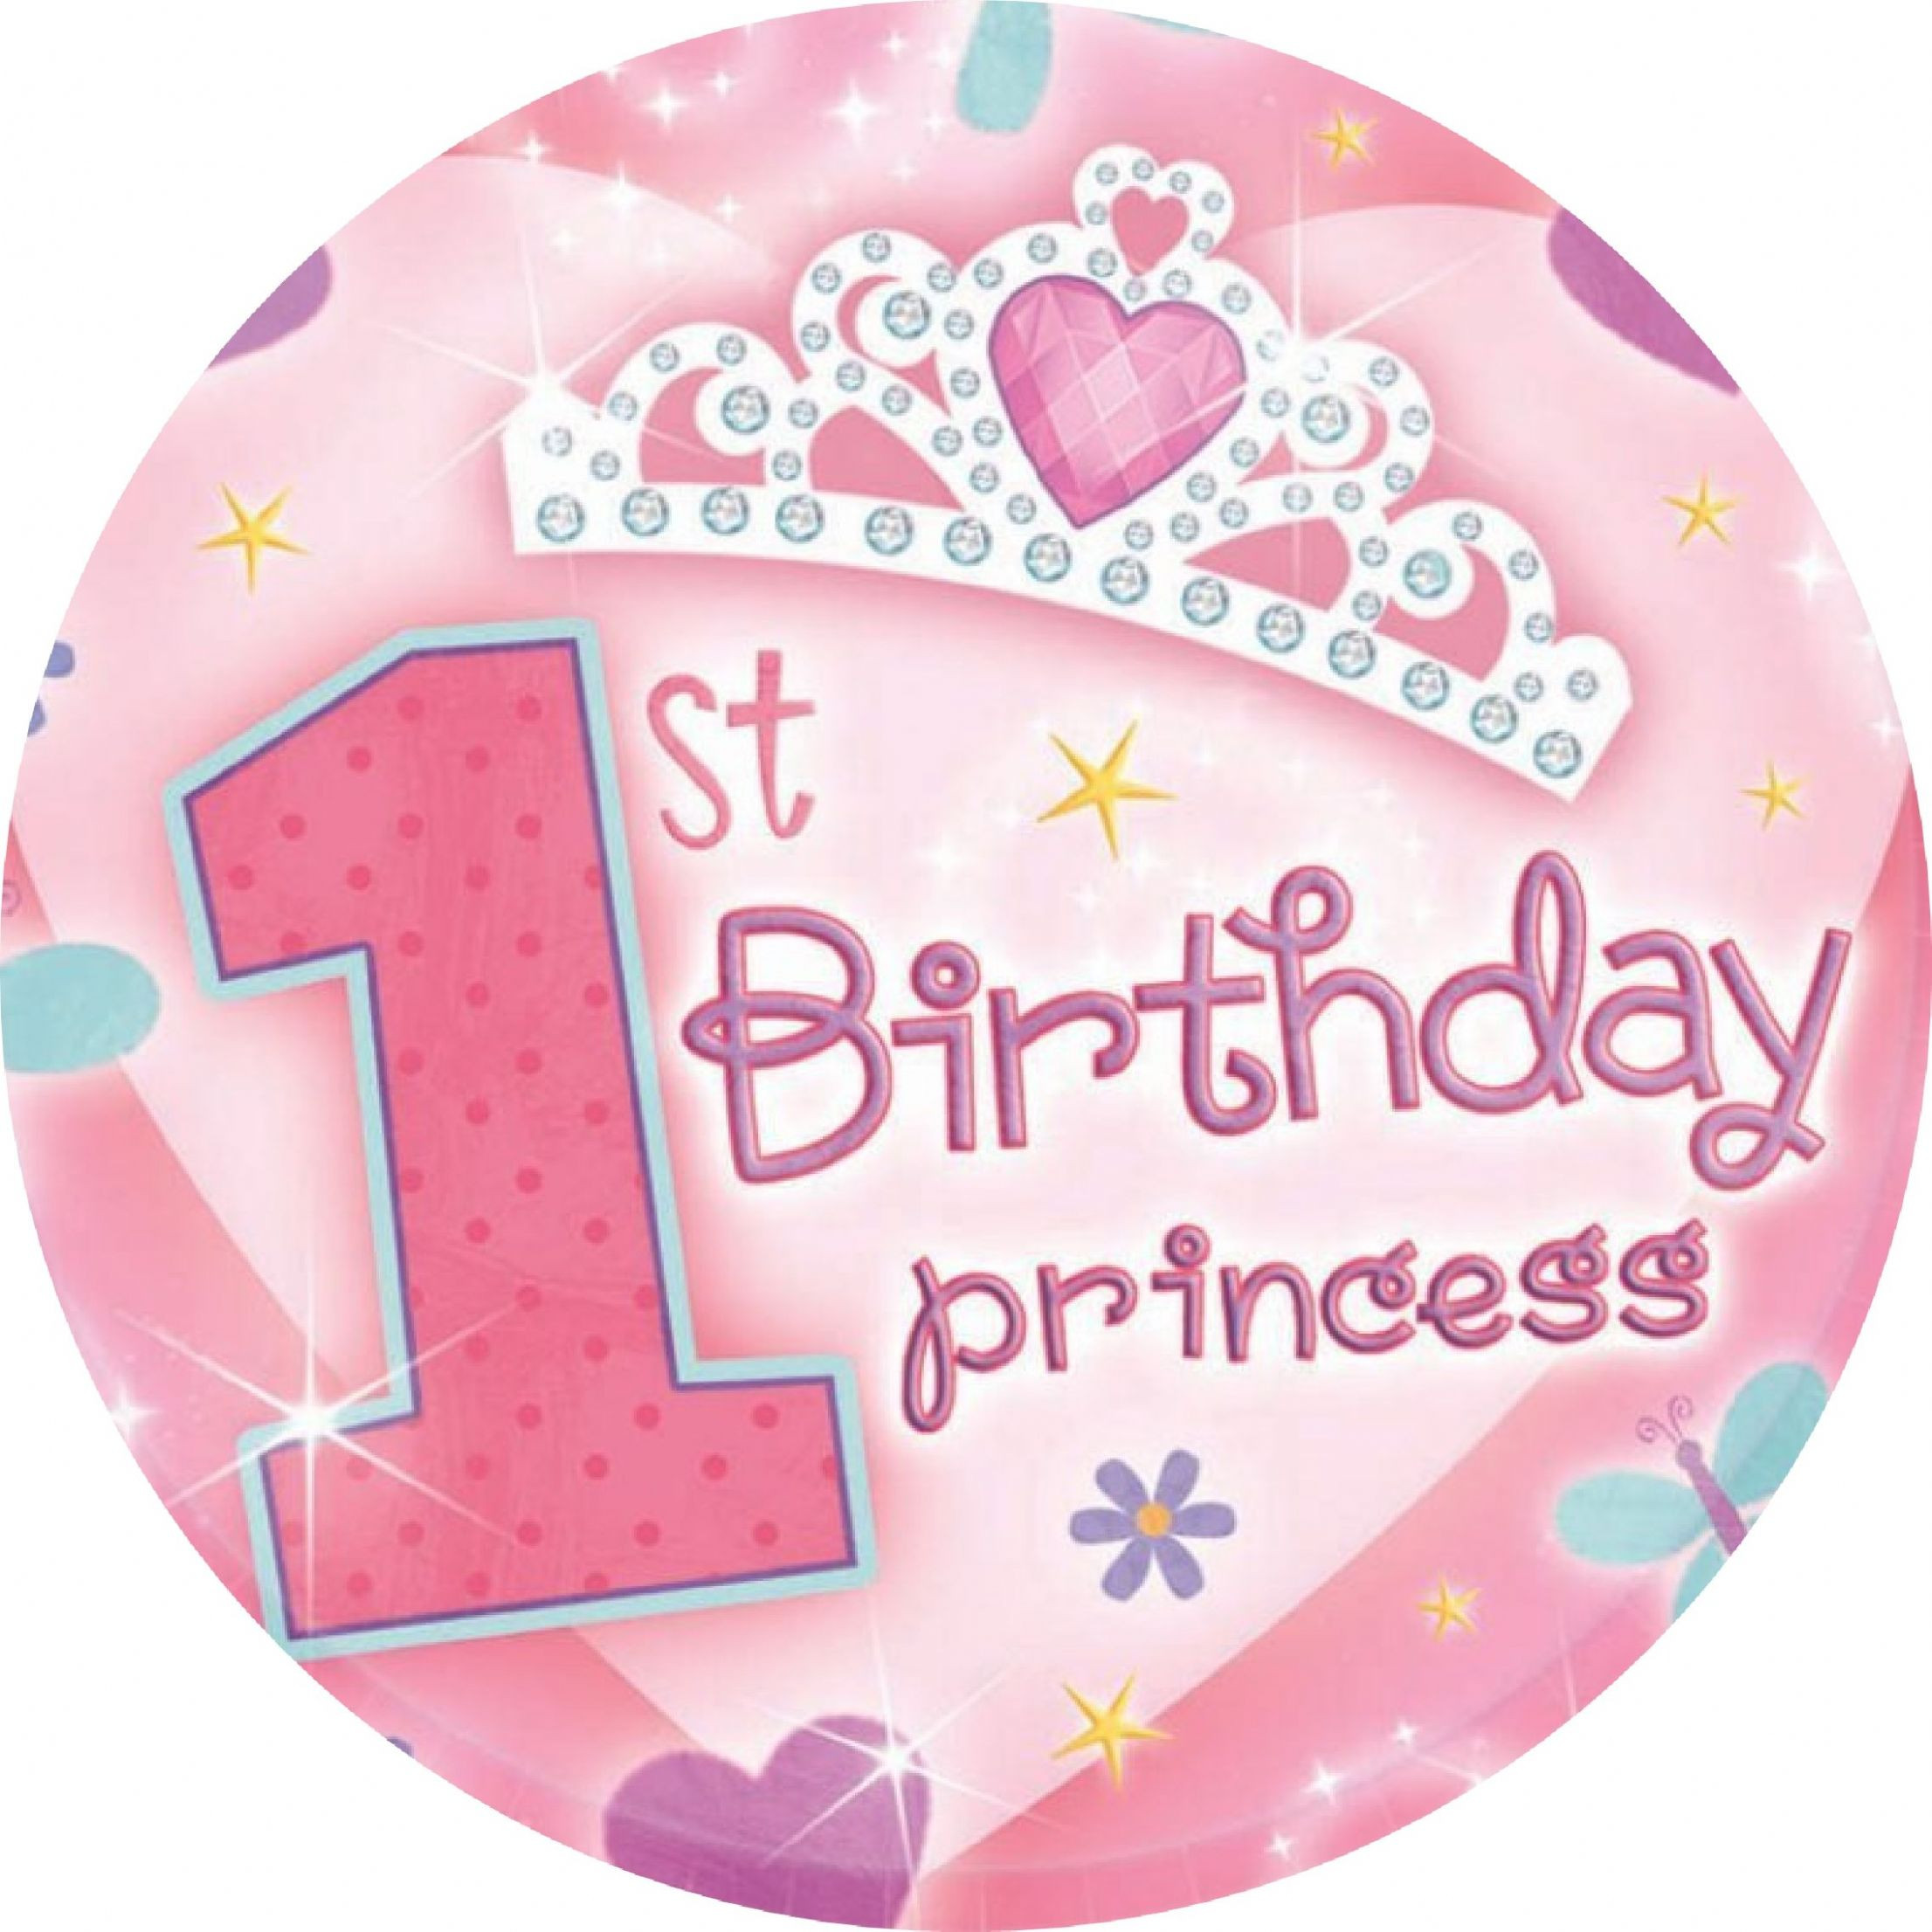 Best ideas about 1st Birthday Cake Topper . Save or Pin Girls 1st Birthday Edible Cake Topper Now.